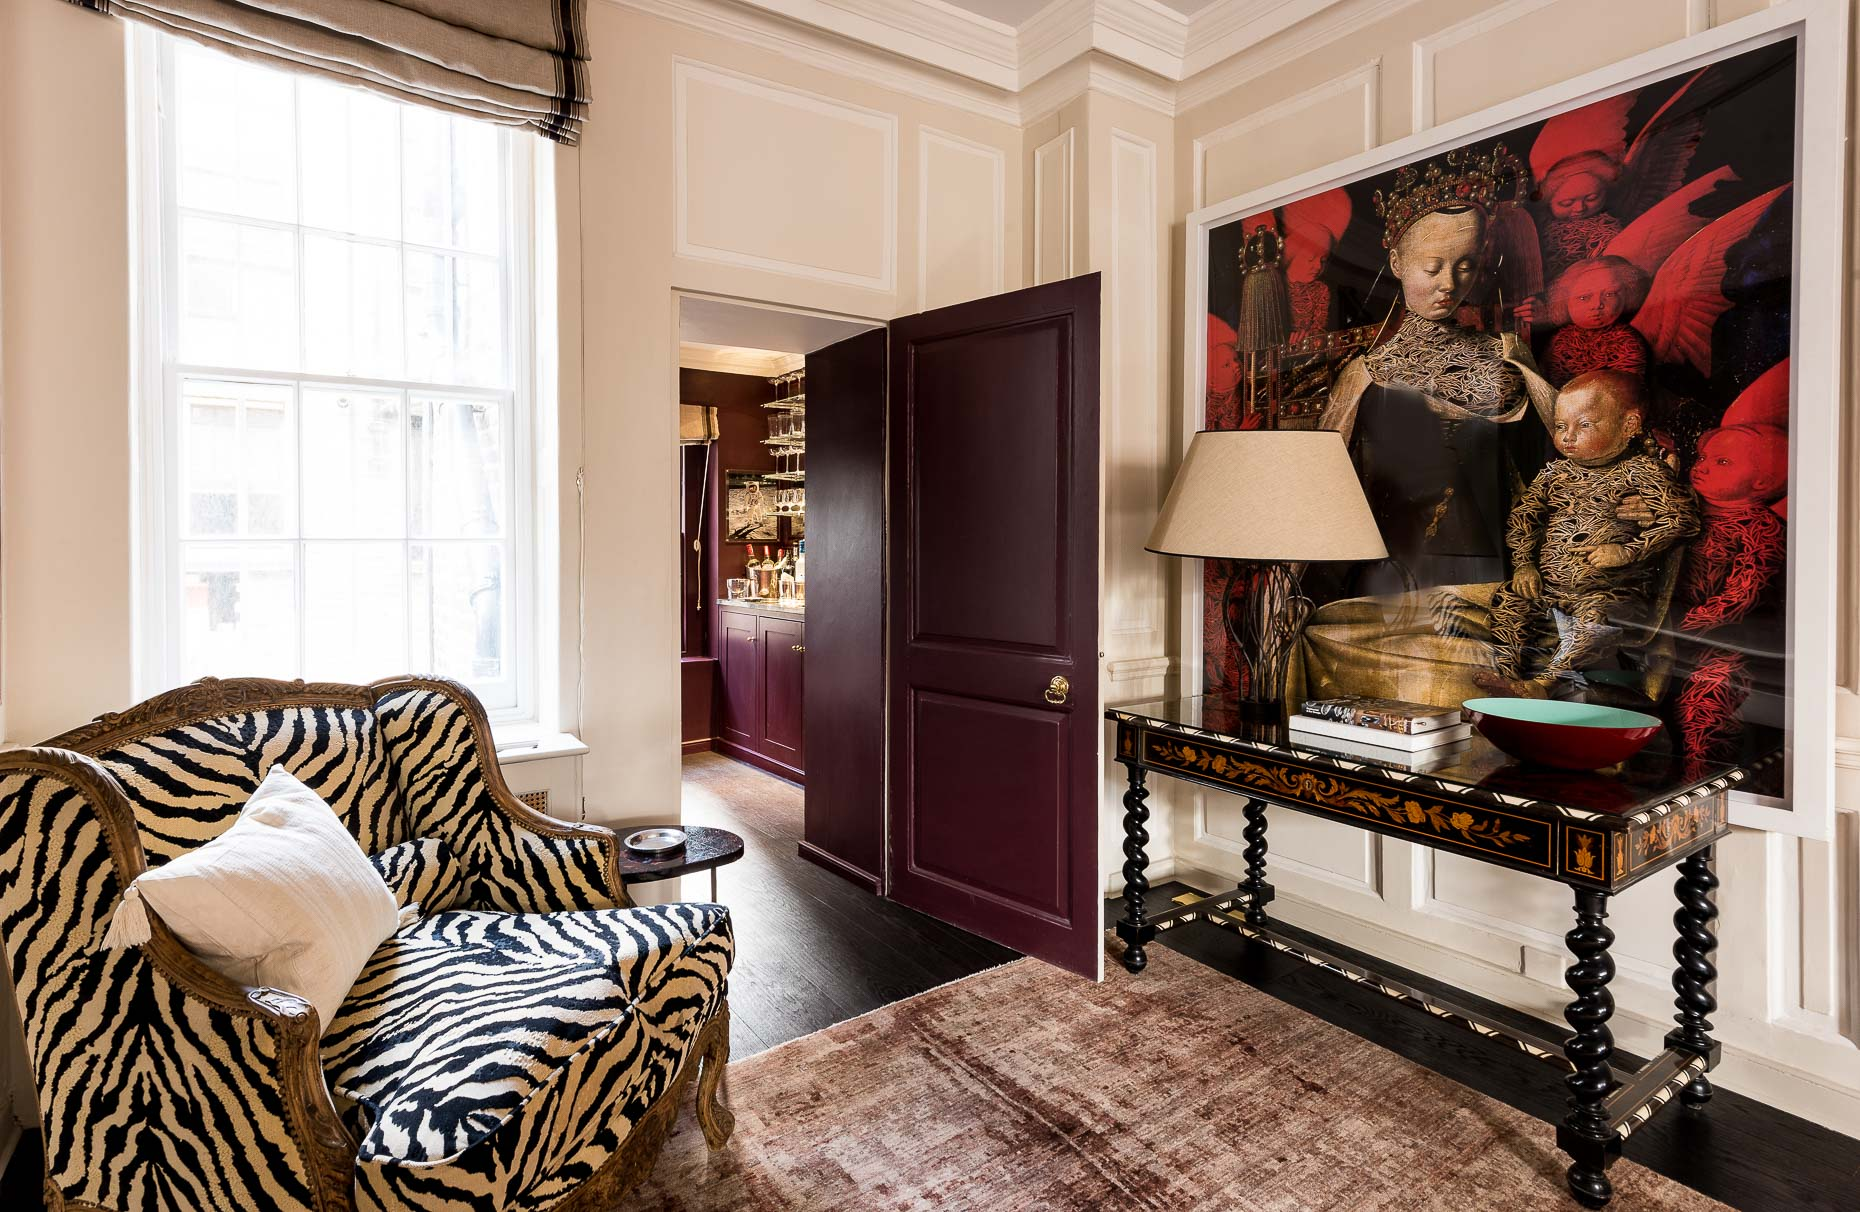 luxury-interior-photography-london-art-12